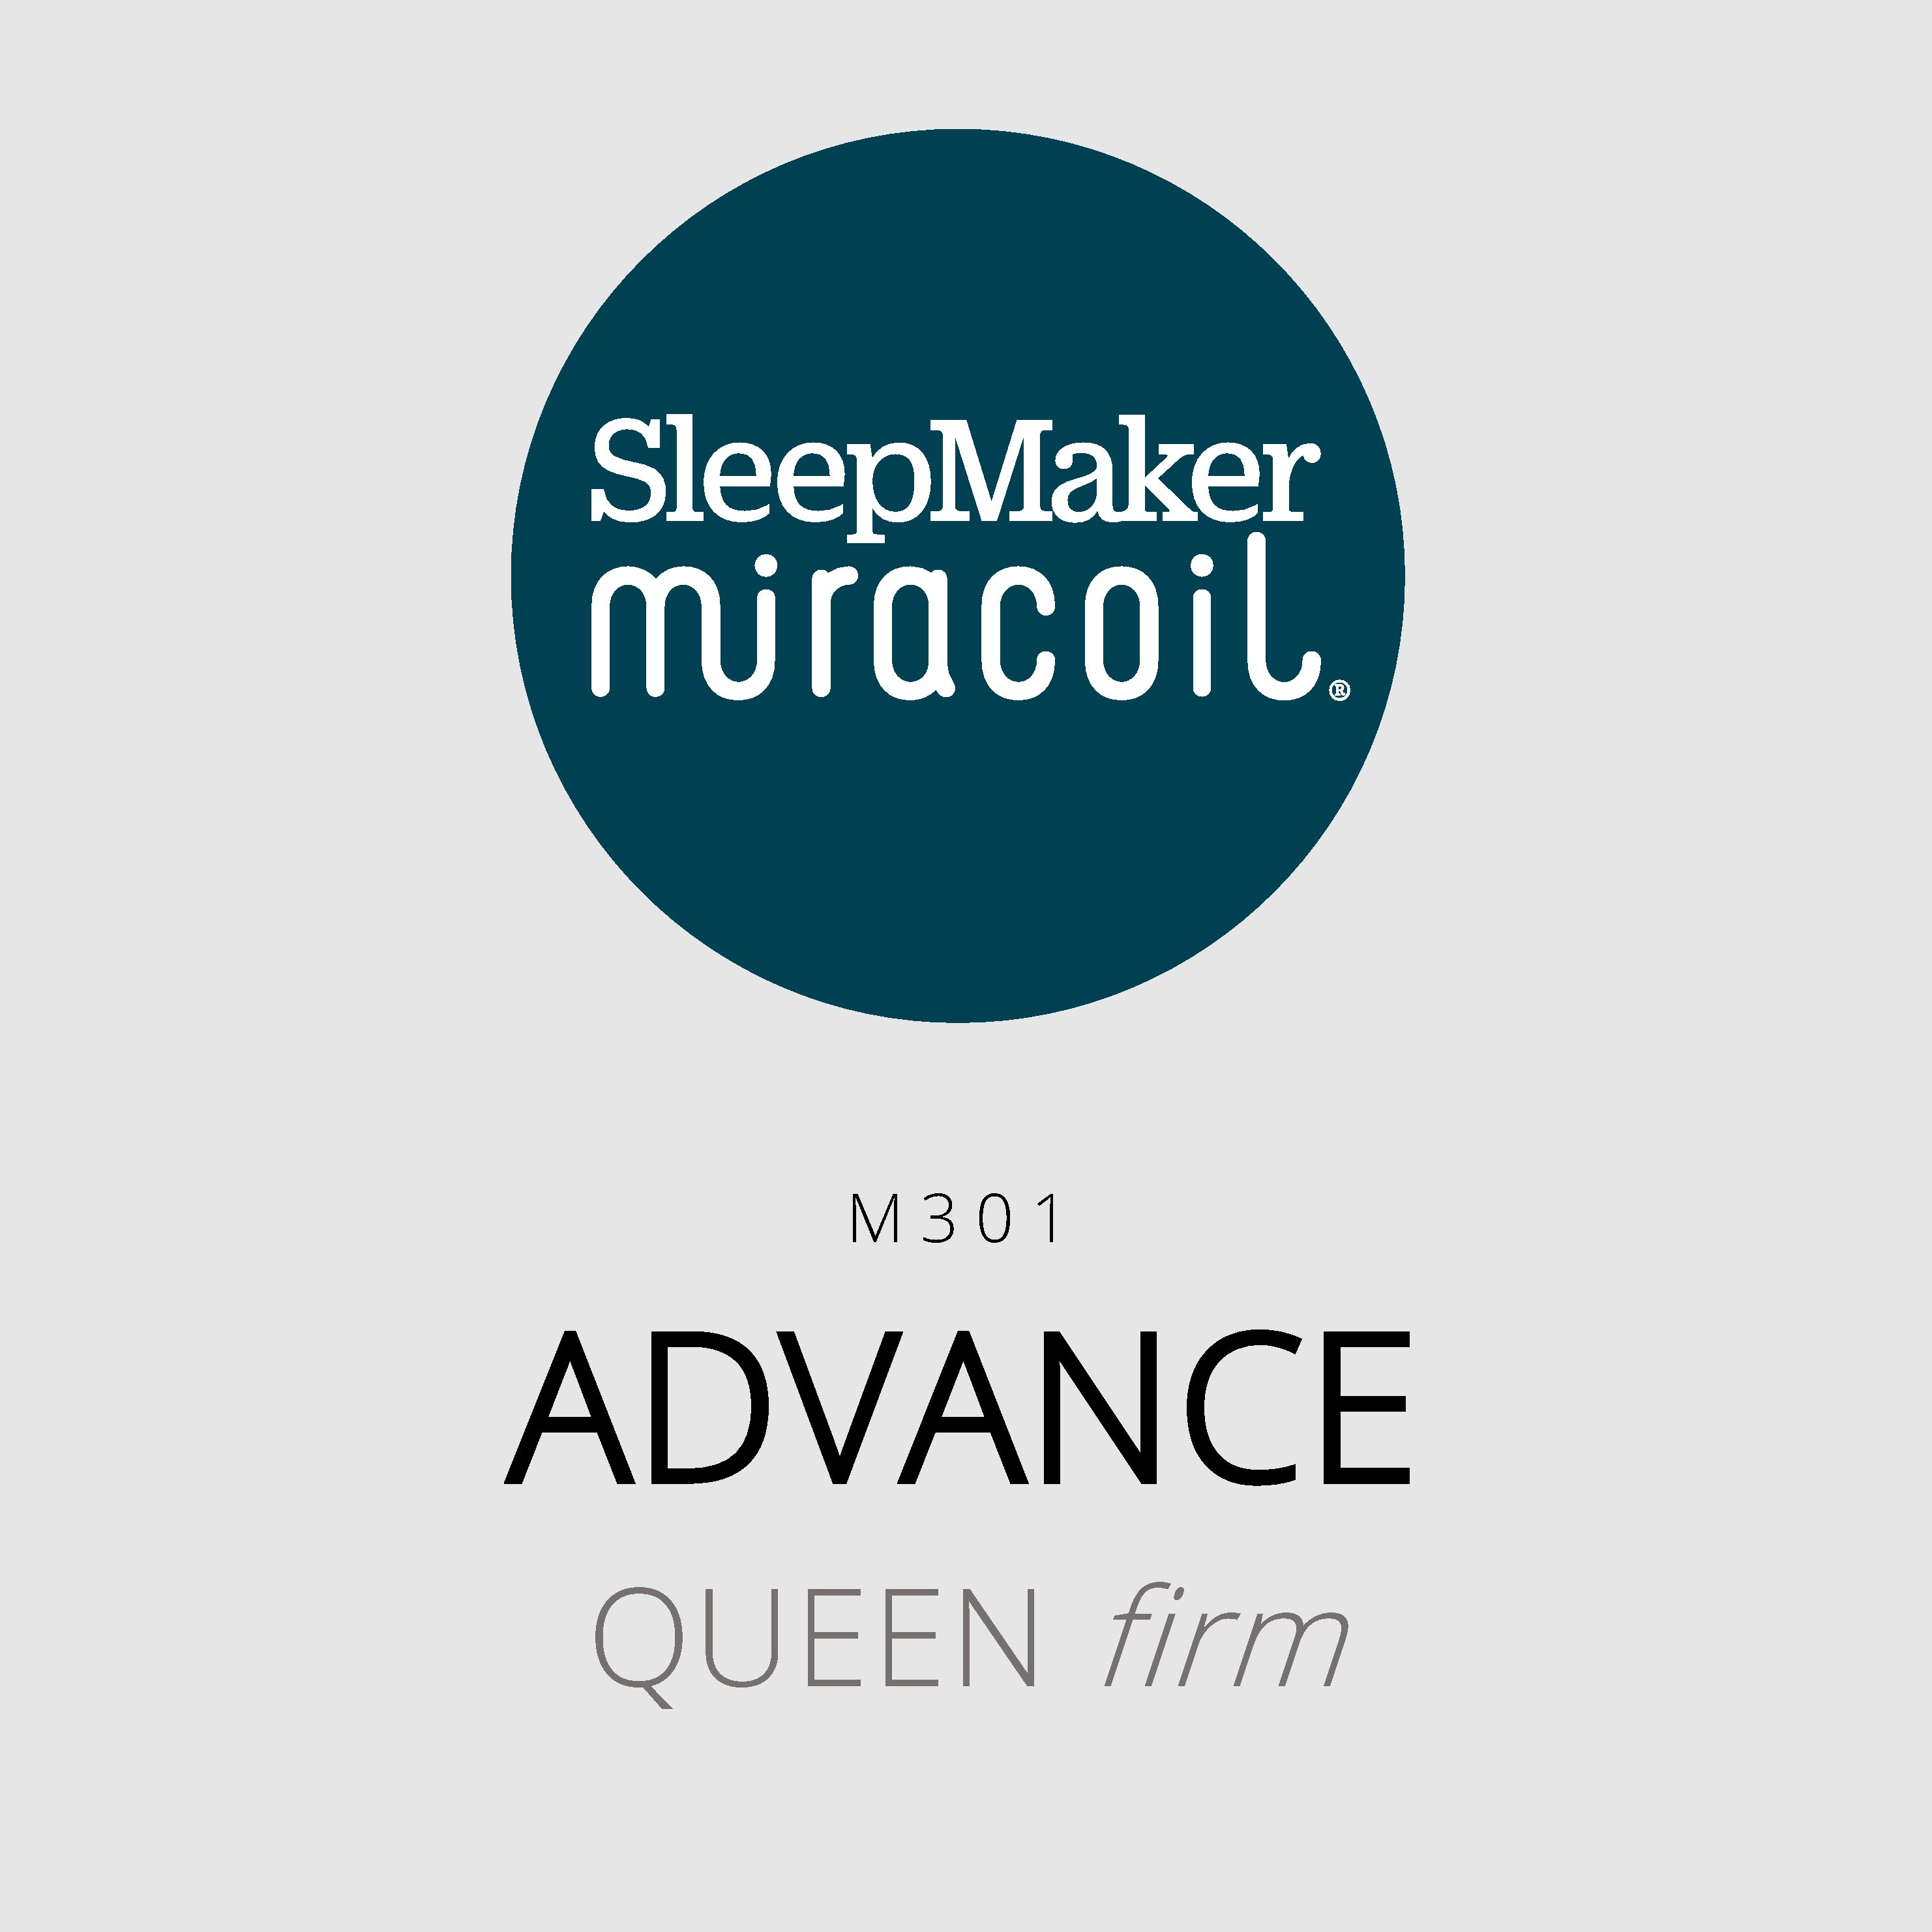 SleepMaker Miracoil – Advance – M301 – Queen Firm Mattress